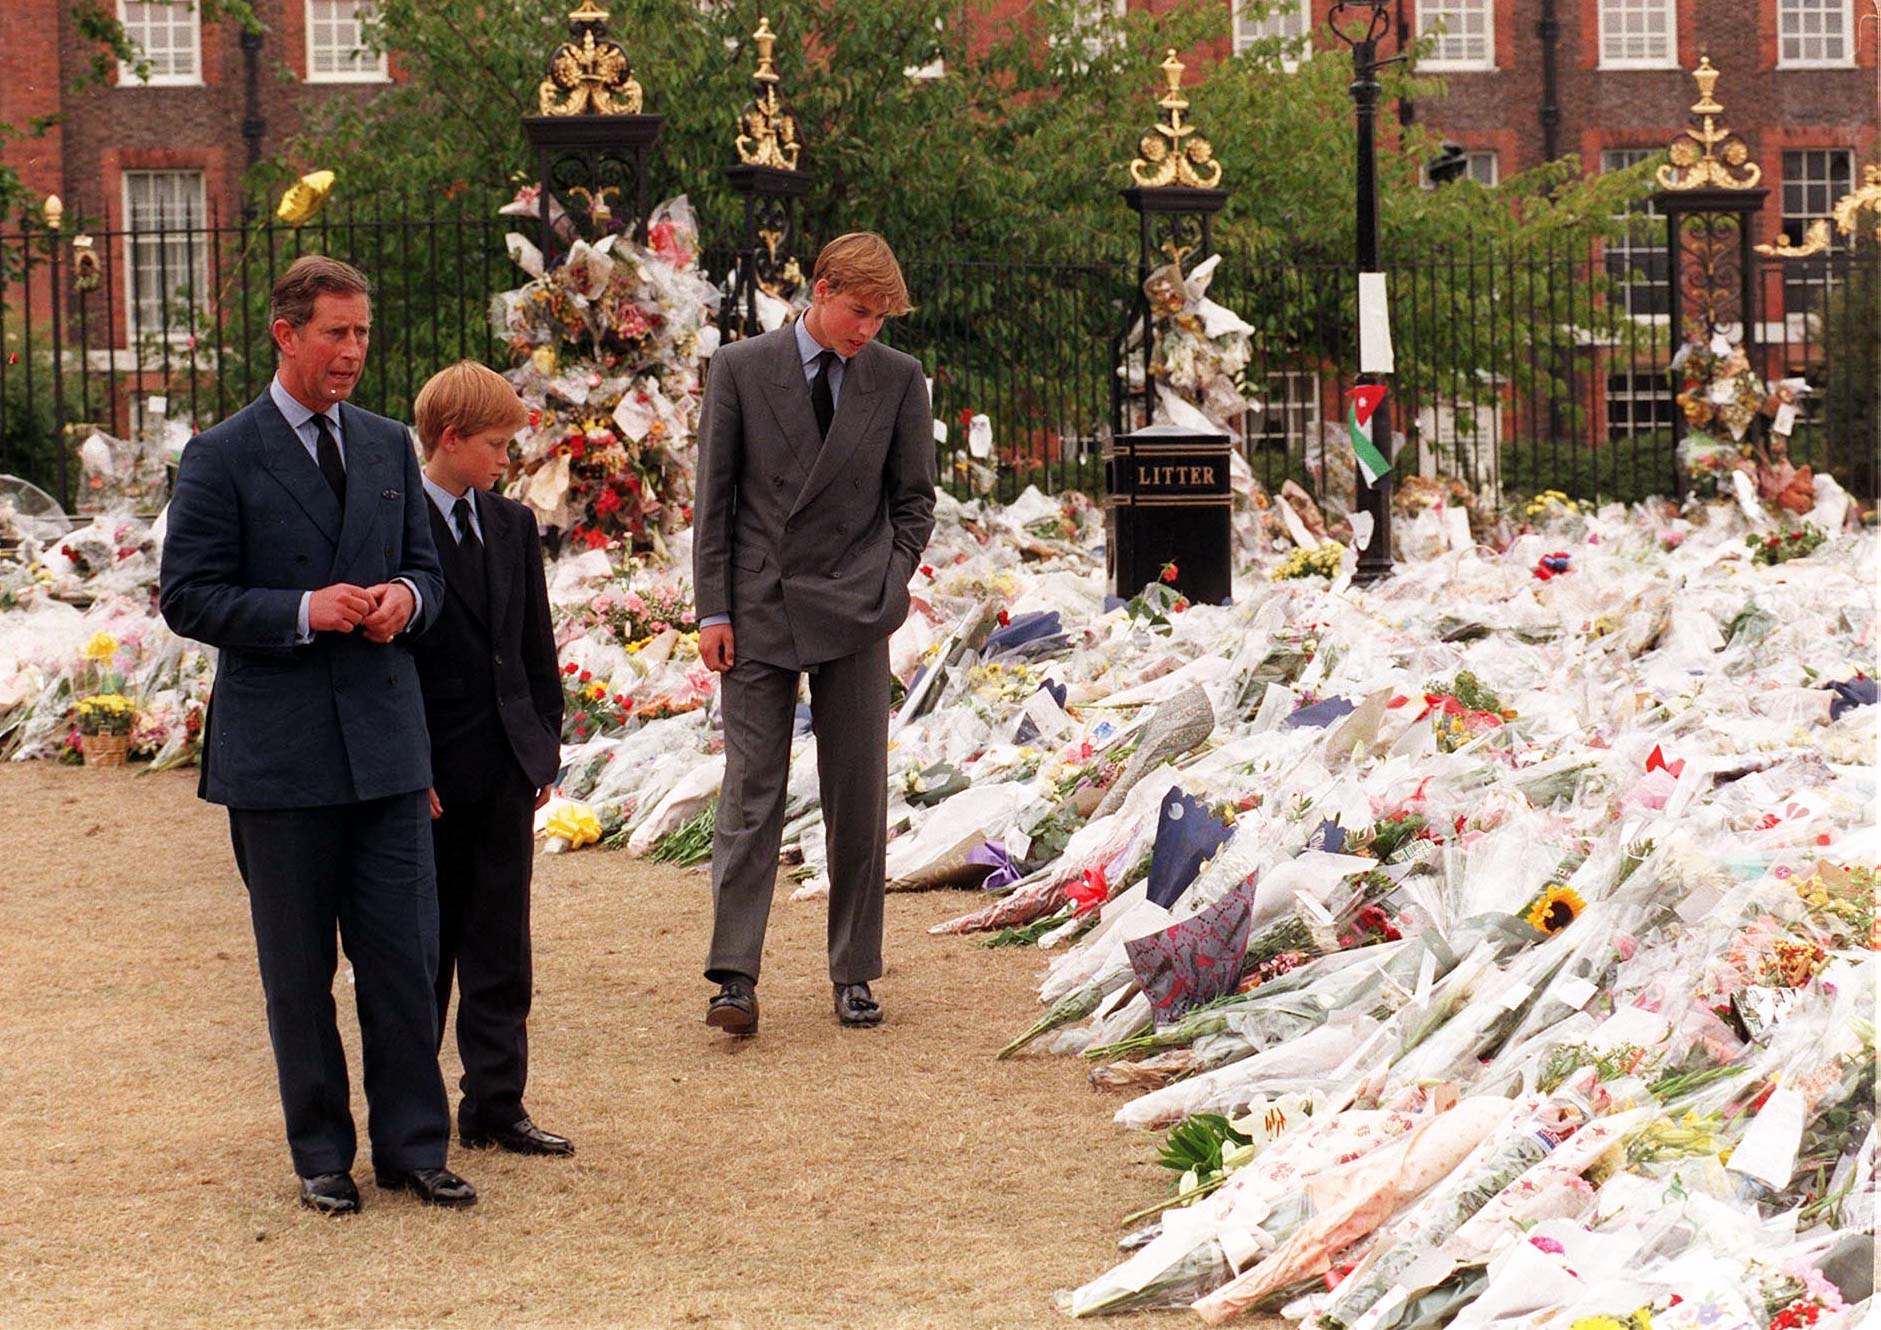 File photo dated 5/9/1997 of the Prince of Wales and his sons Prince William (right) and Prince Harry, view the sea of floral tributes to Diana, Princess of Wales, at Kensington Palace. The Princes on Wednesday viewed tributes attached to the Golden Gates of the Palace in London ahead of the 20th anniversary of their mother's death. Issue date: Friday September 5, 1997.